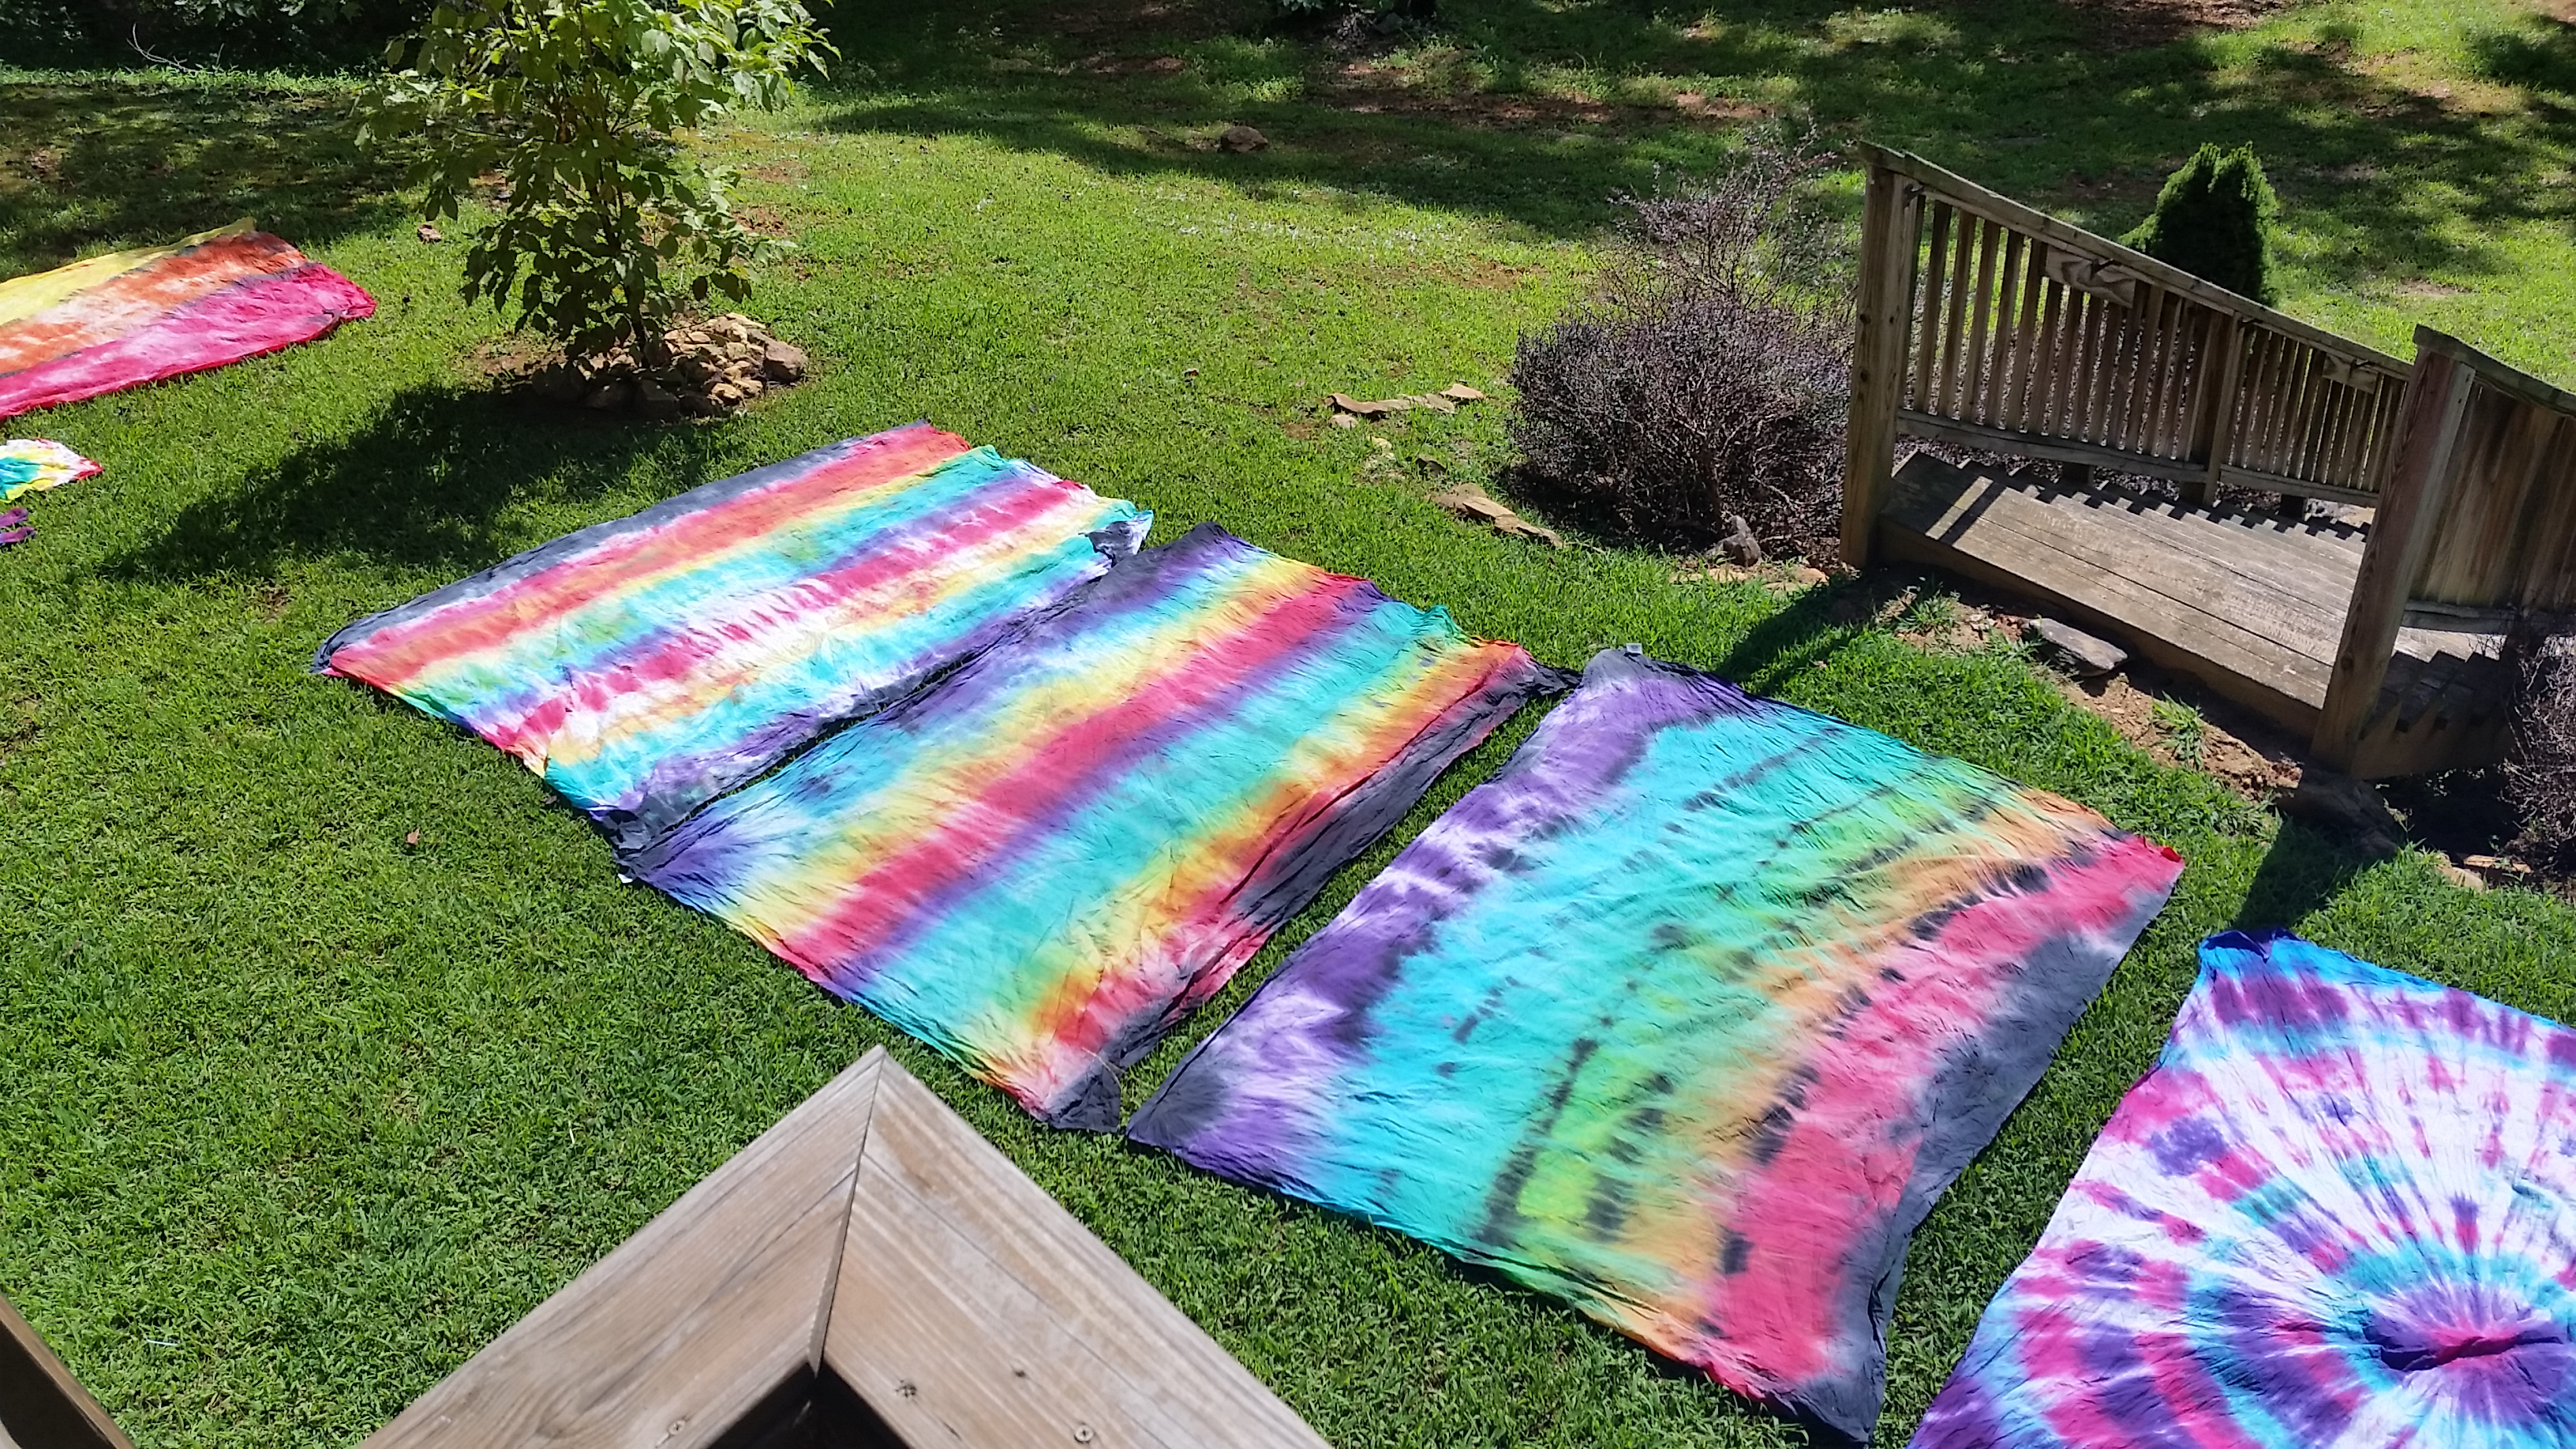 DIY Tie-Dye Tapestries